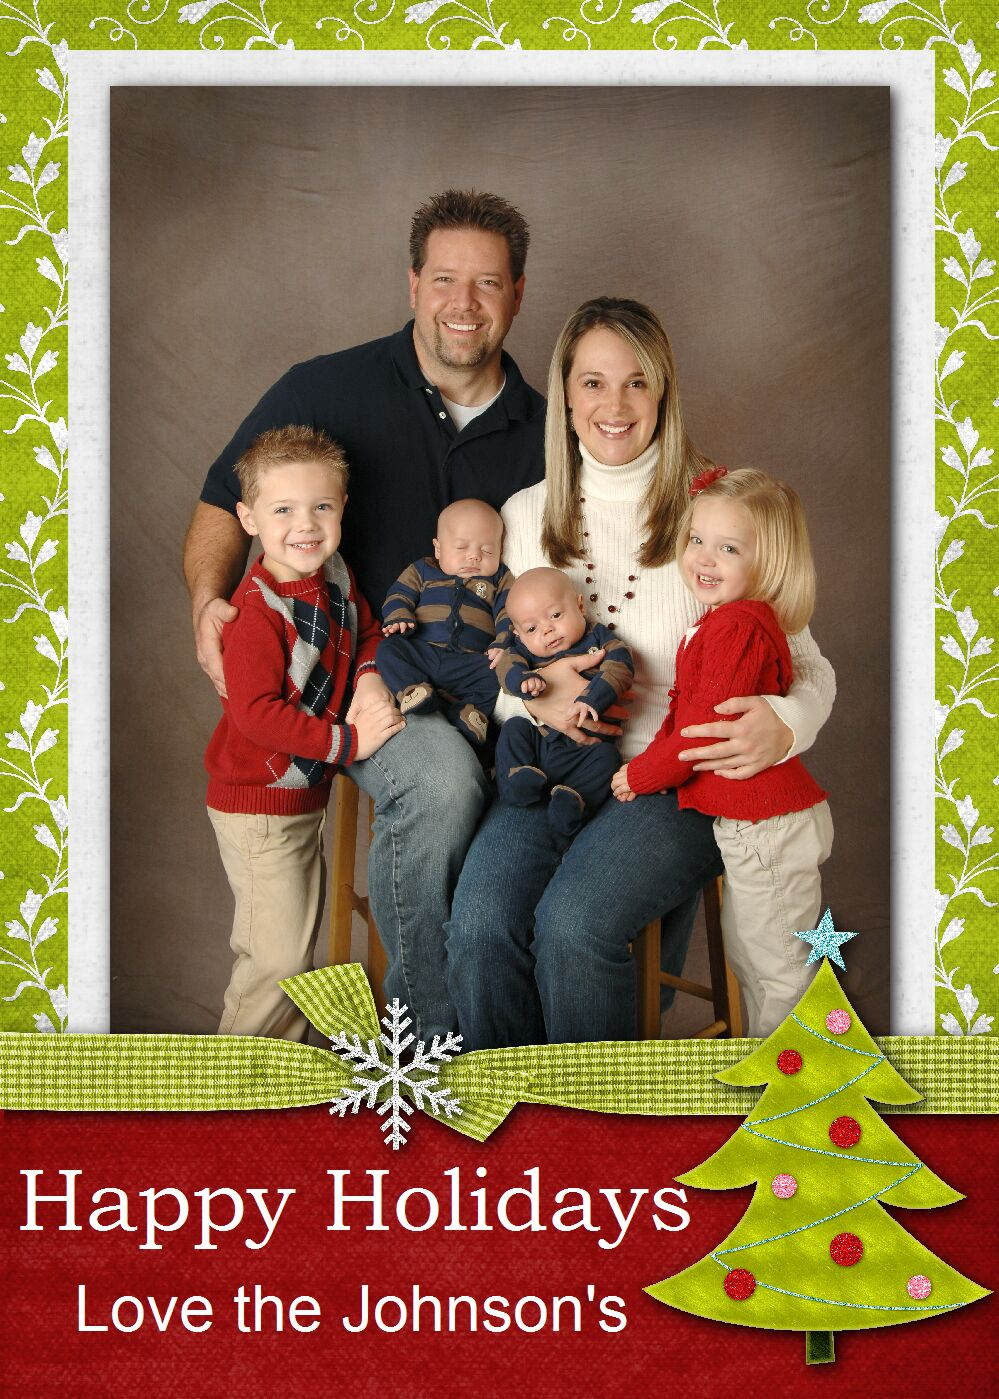 GeneaWebinars: Create your own Christmas cards and share ...